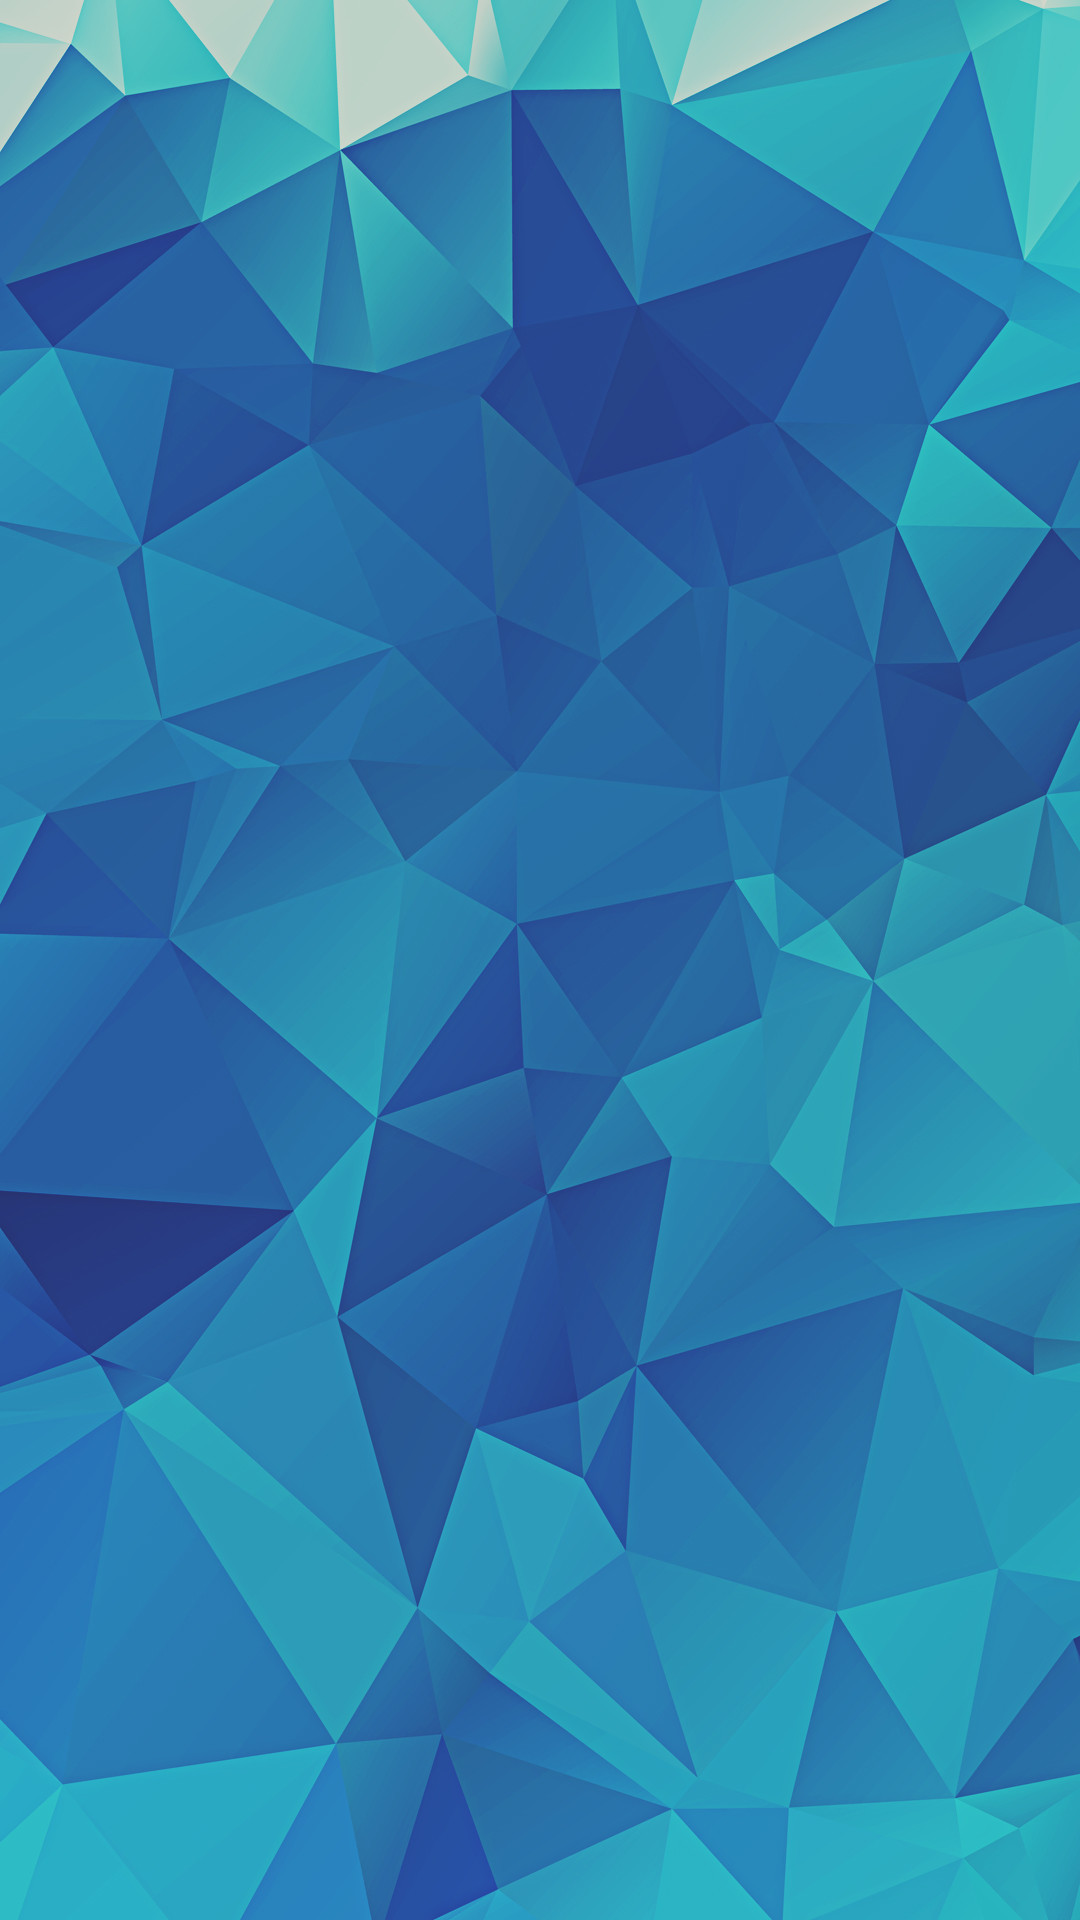 Low Poly Blue Triangles iPhone 6+ HD Wallpaper